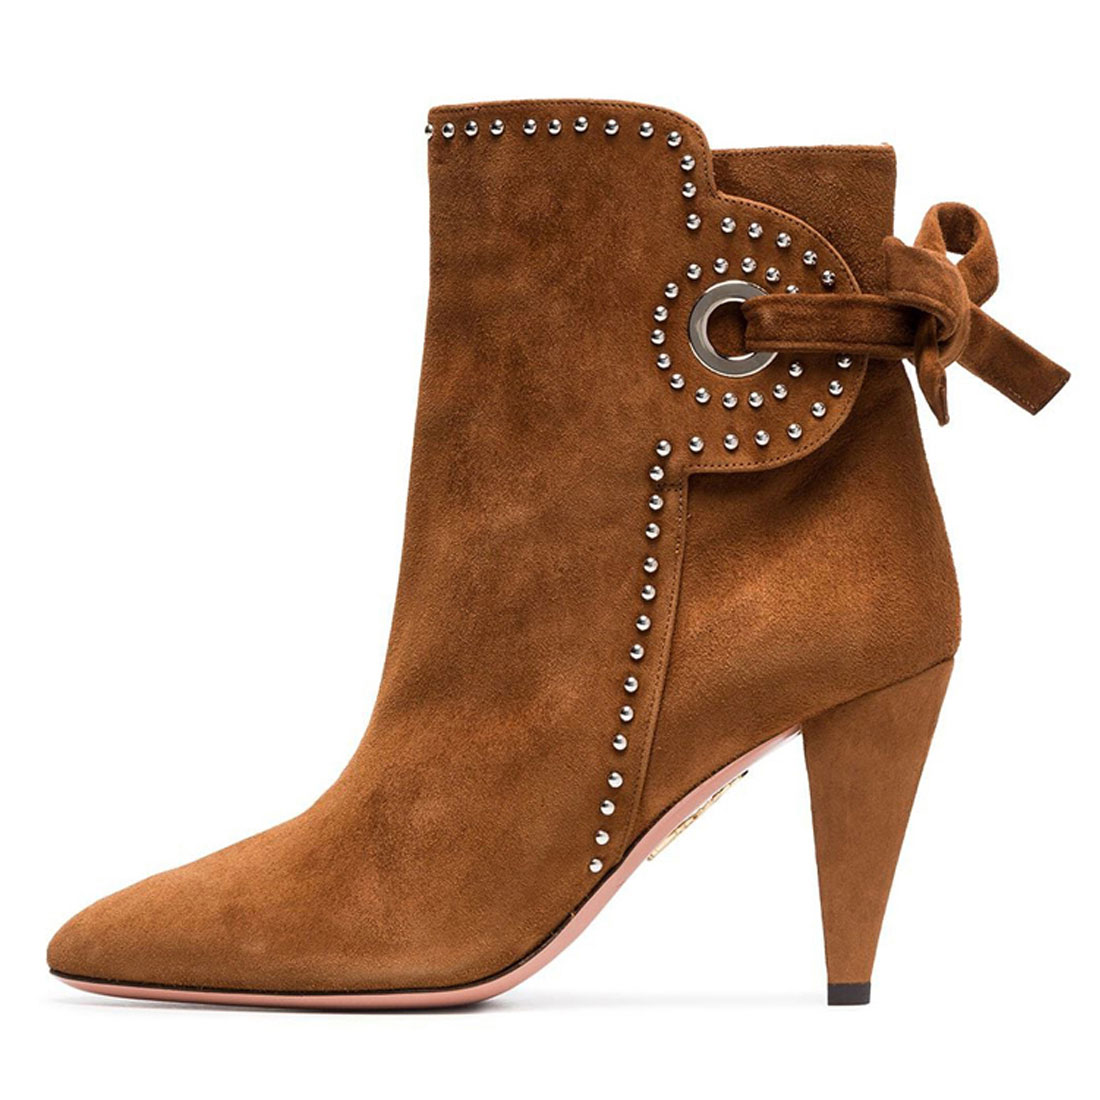 Designer Brown Suede Leather Chunky Heels Ankle Boot Women Shoes BT1942